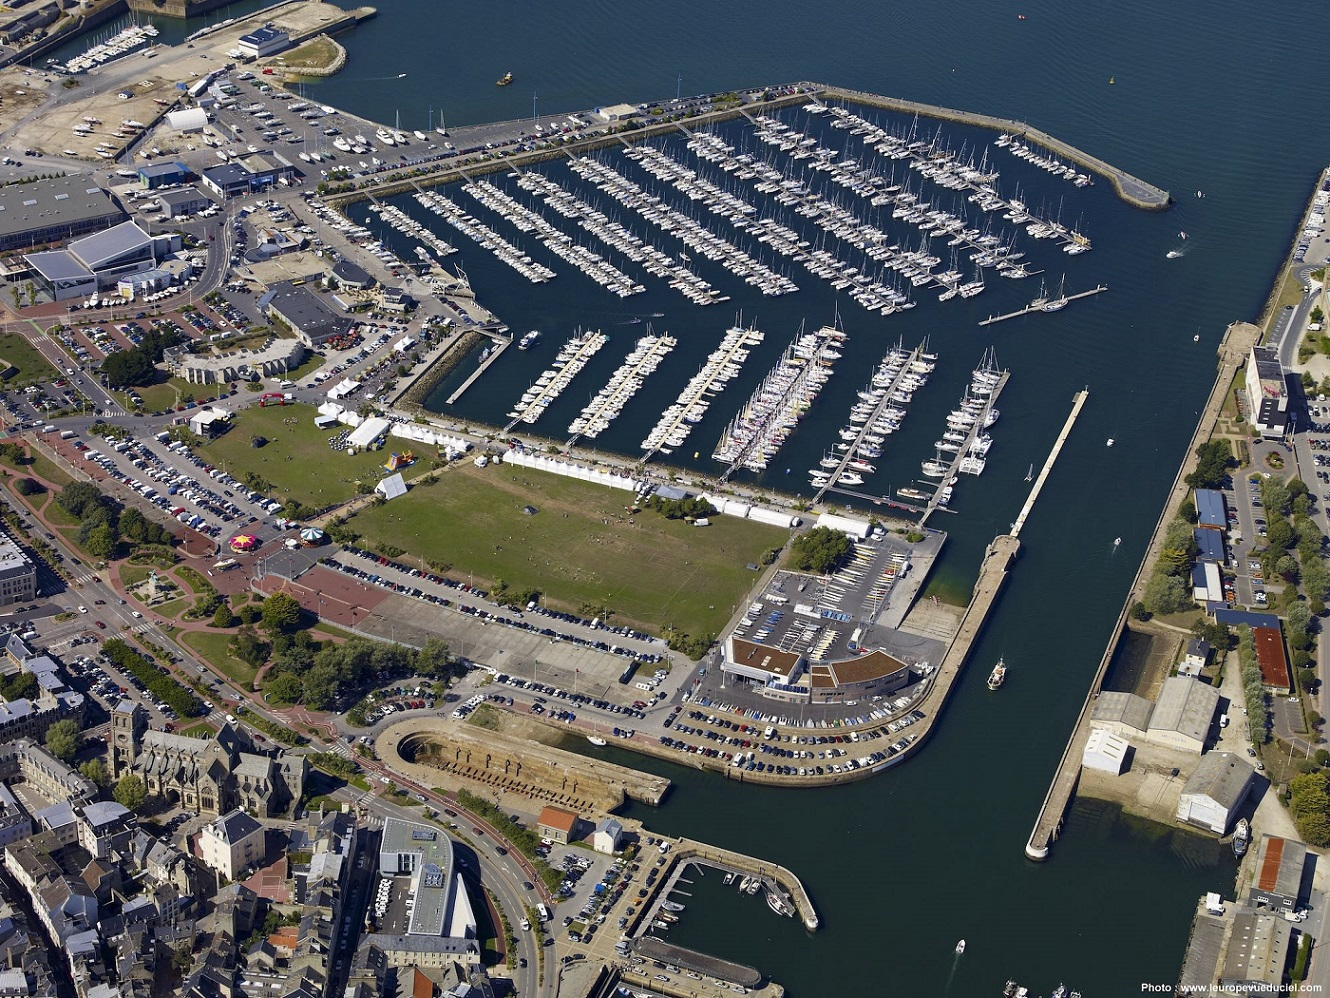 Aerial view of the host port - Cherbourg, France where the massive fleet will be berthed and sailors from around the world will enjoy the festivities and fantastic atmosphere on arrival © www.leuropevueduciel.com